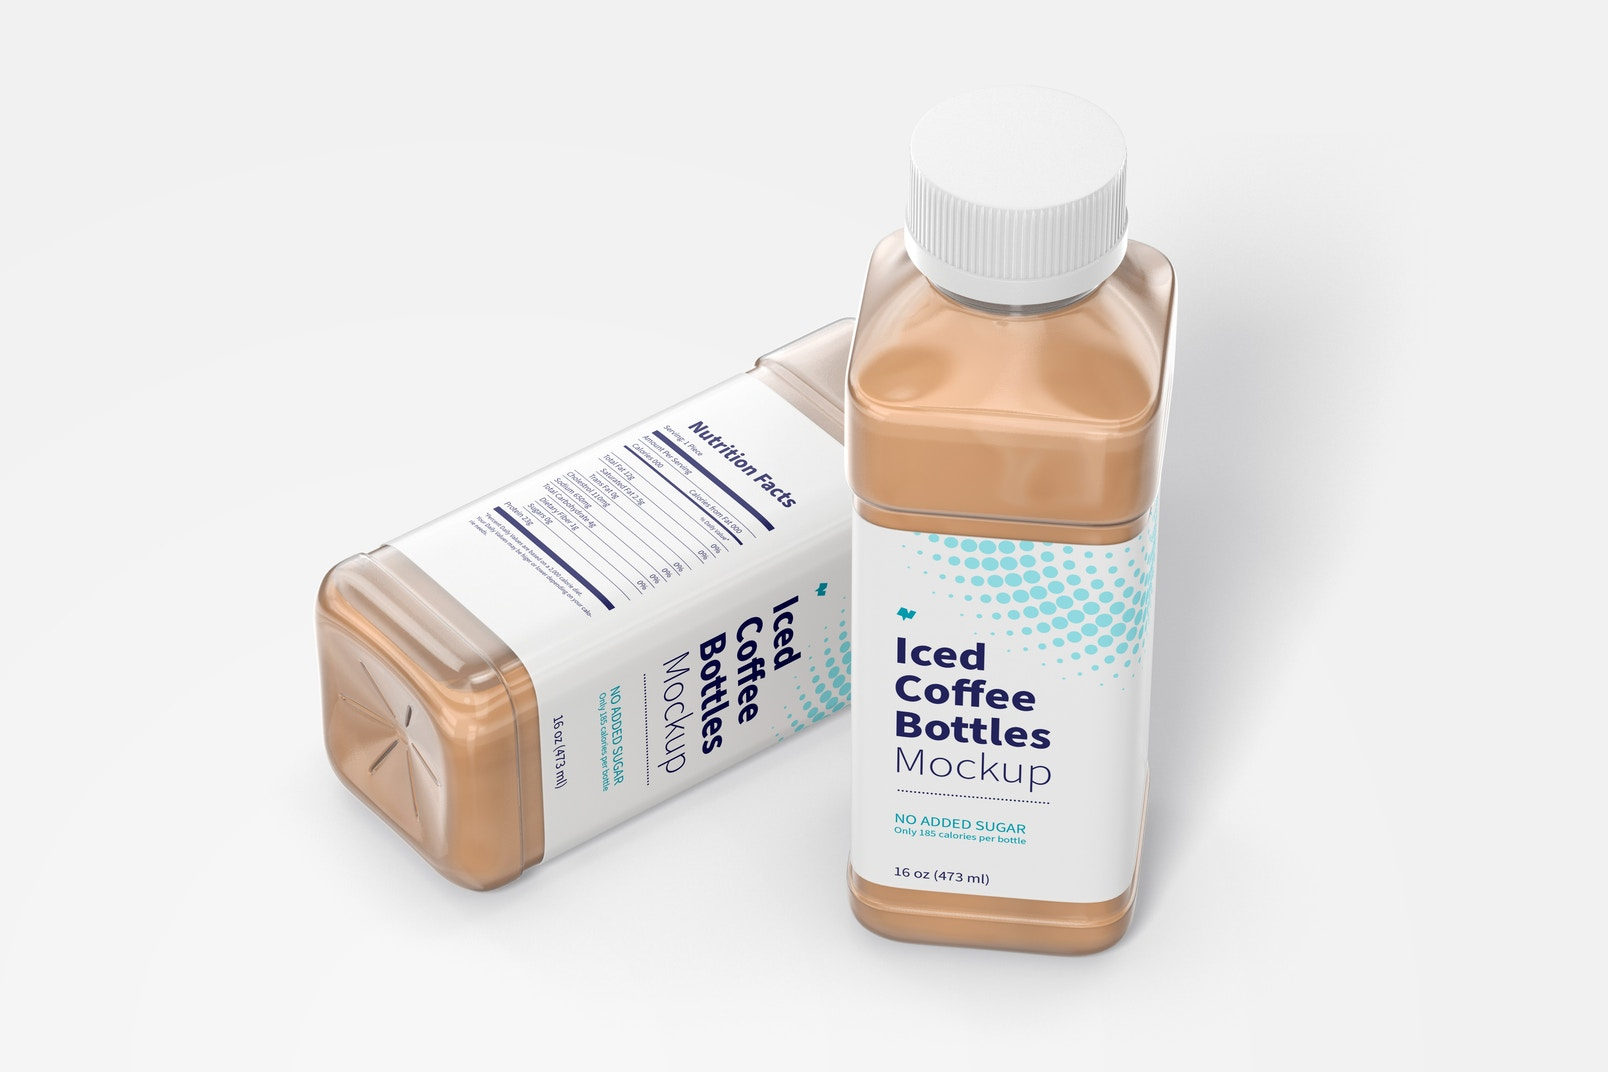 16 oz Iced Coffee Bottles Mockup, Perspective View